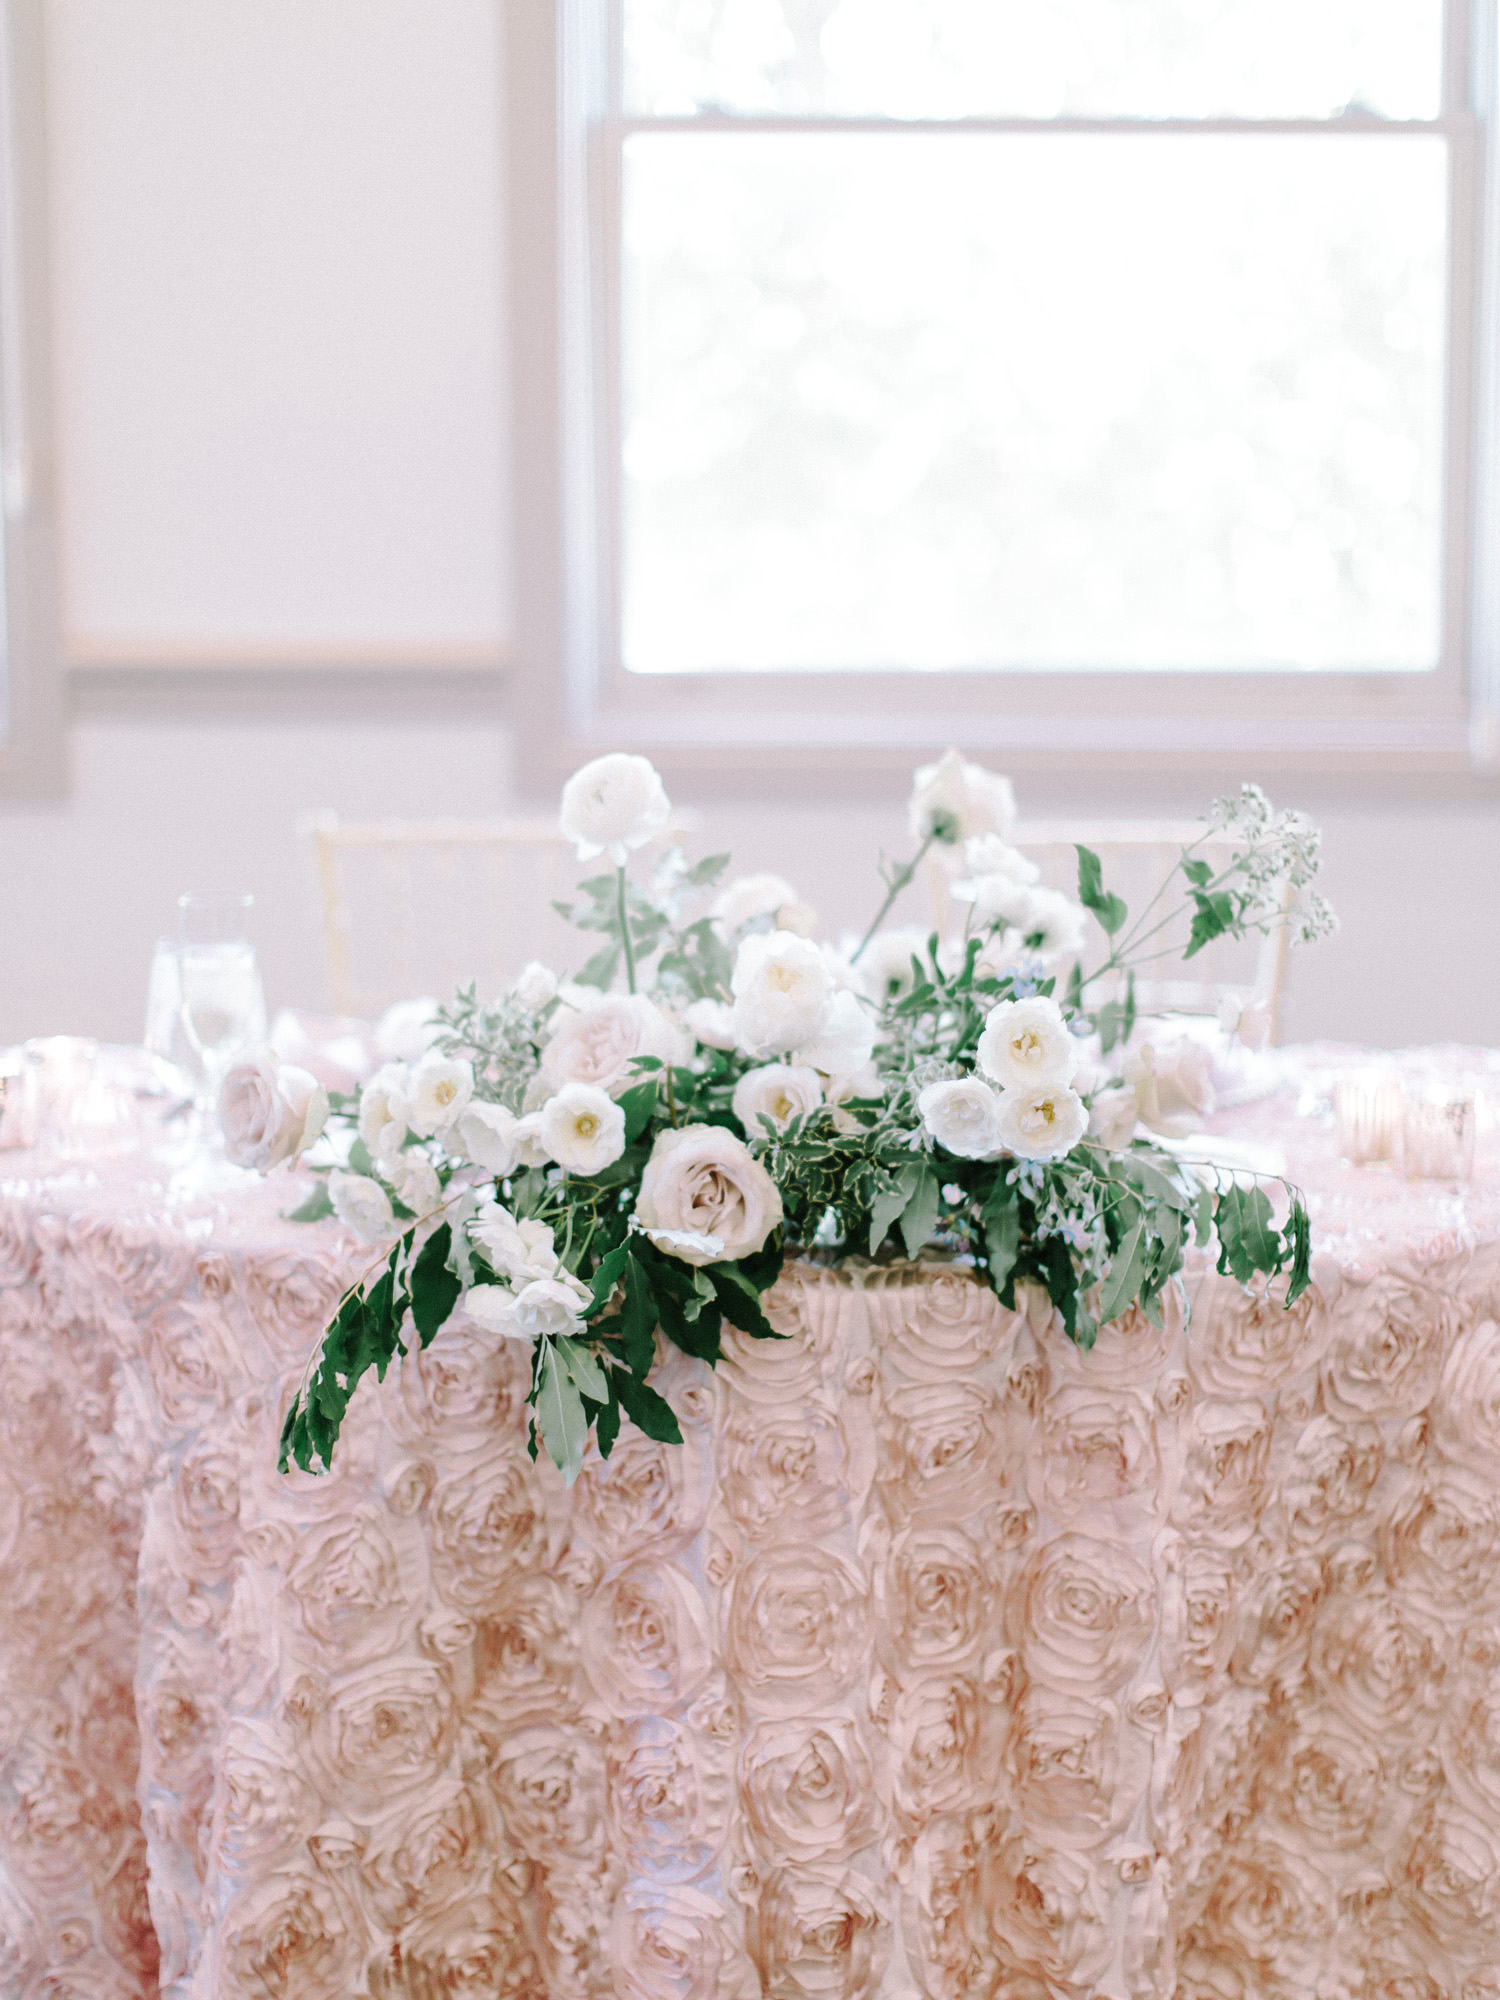 A romantic sweetheart table with simple decor and greenery at the Polo Fields in Ann Arbor, Michigan